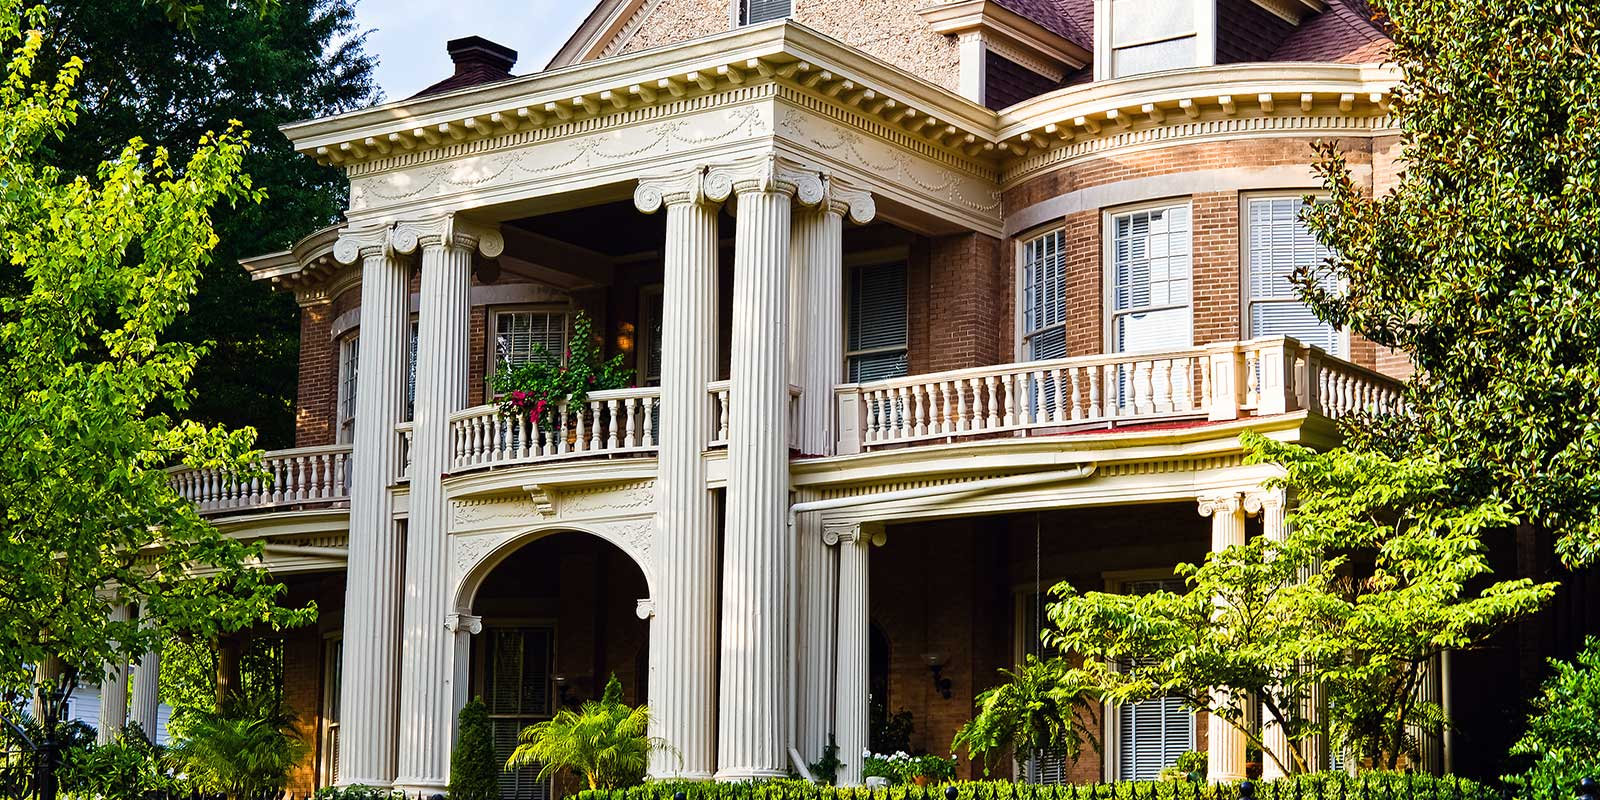 Historic Property For Sale Old Homes Historic Businesses United Country,Different Ways To Hang Curtains